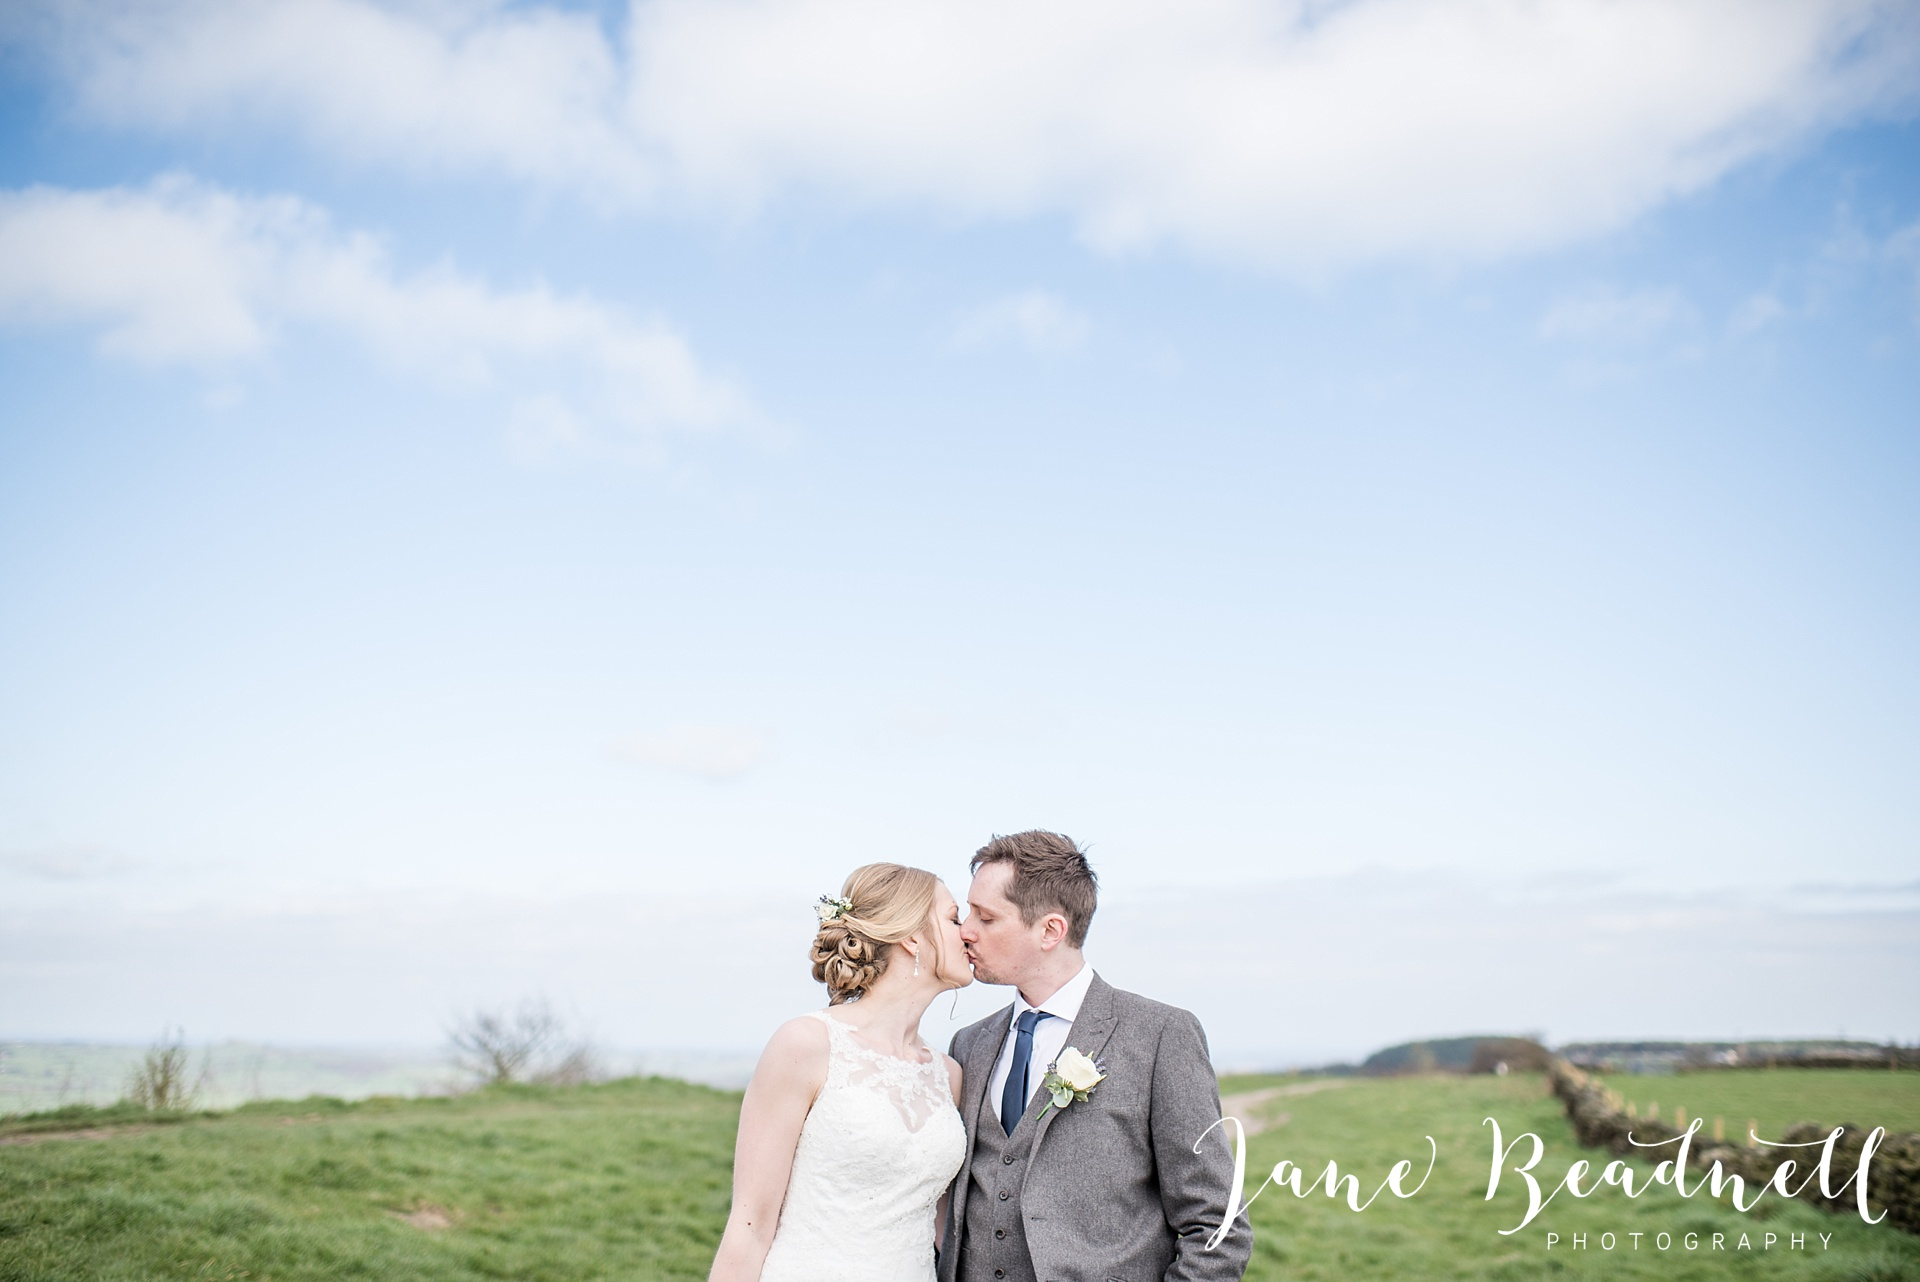 Otley Chevin Lodge wedding photography by Jane Beadnell Photography Leeds_0109